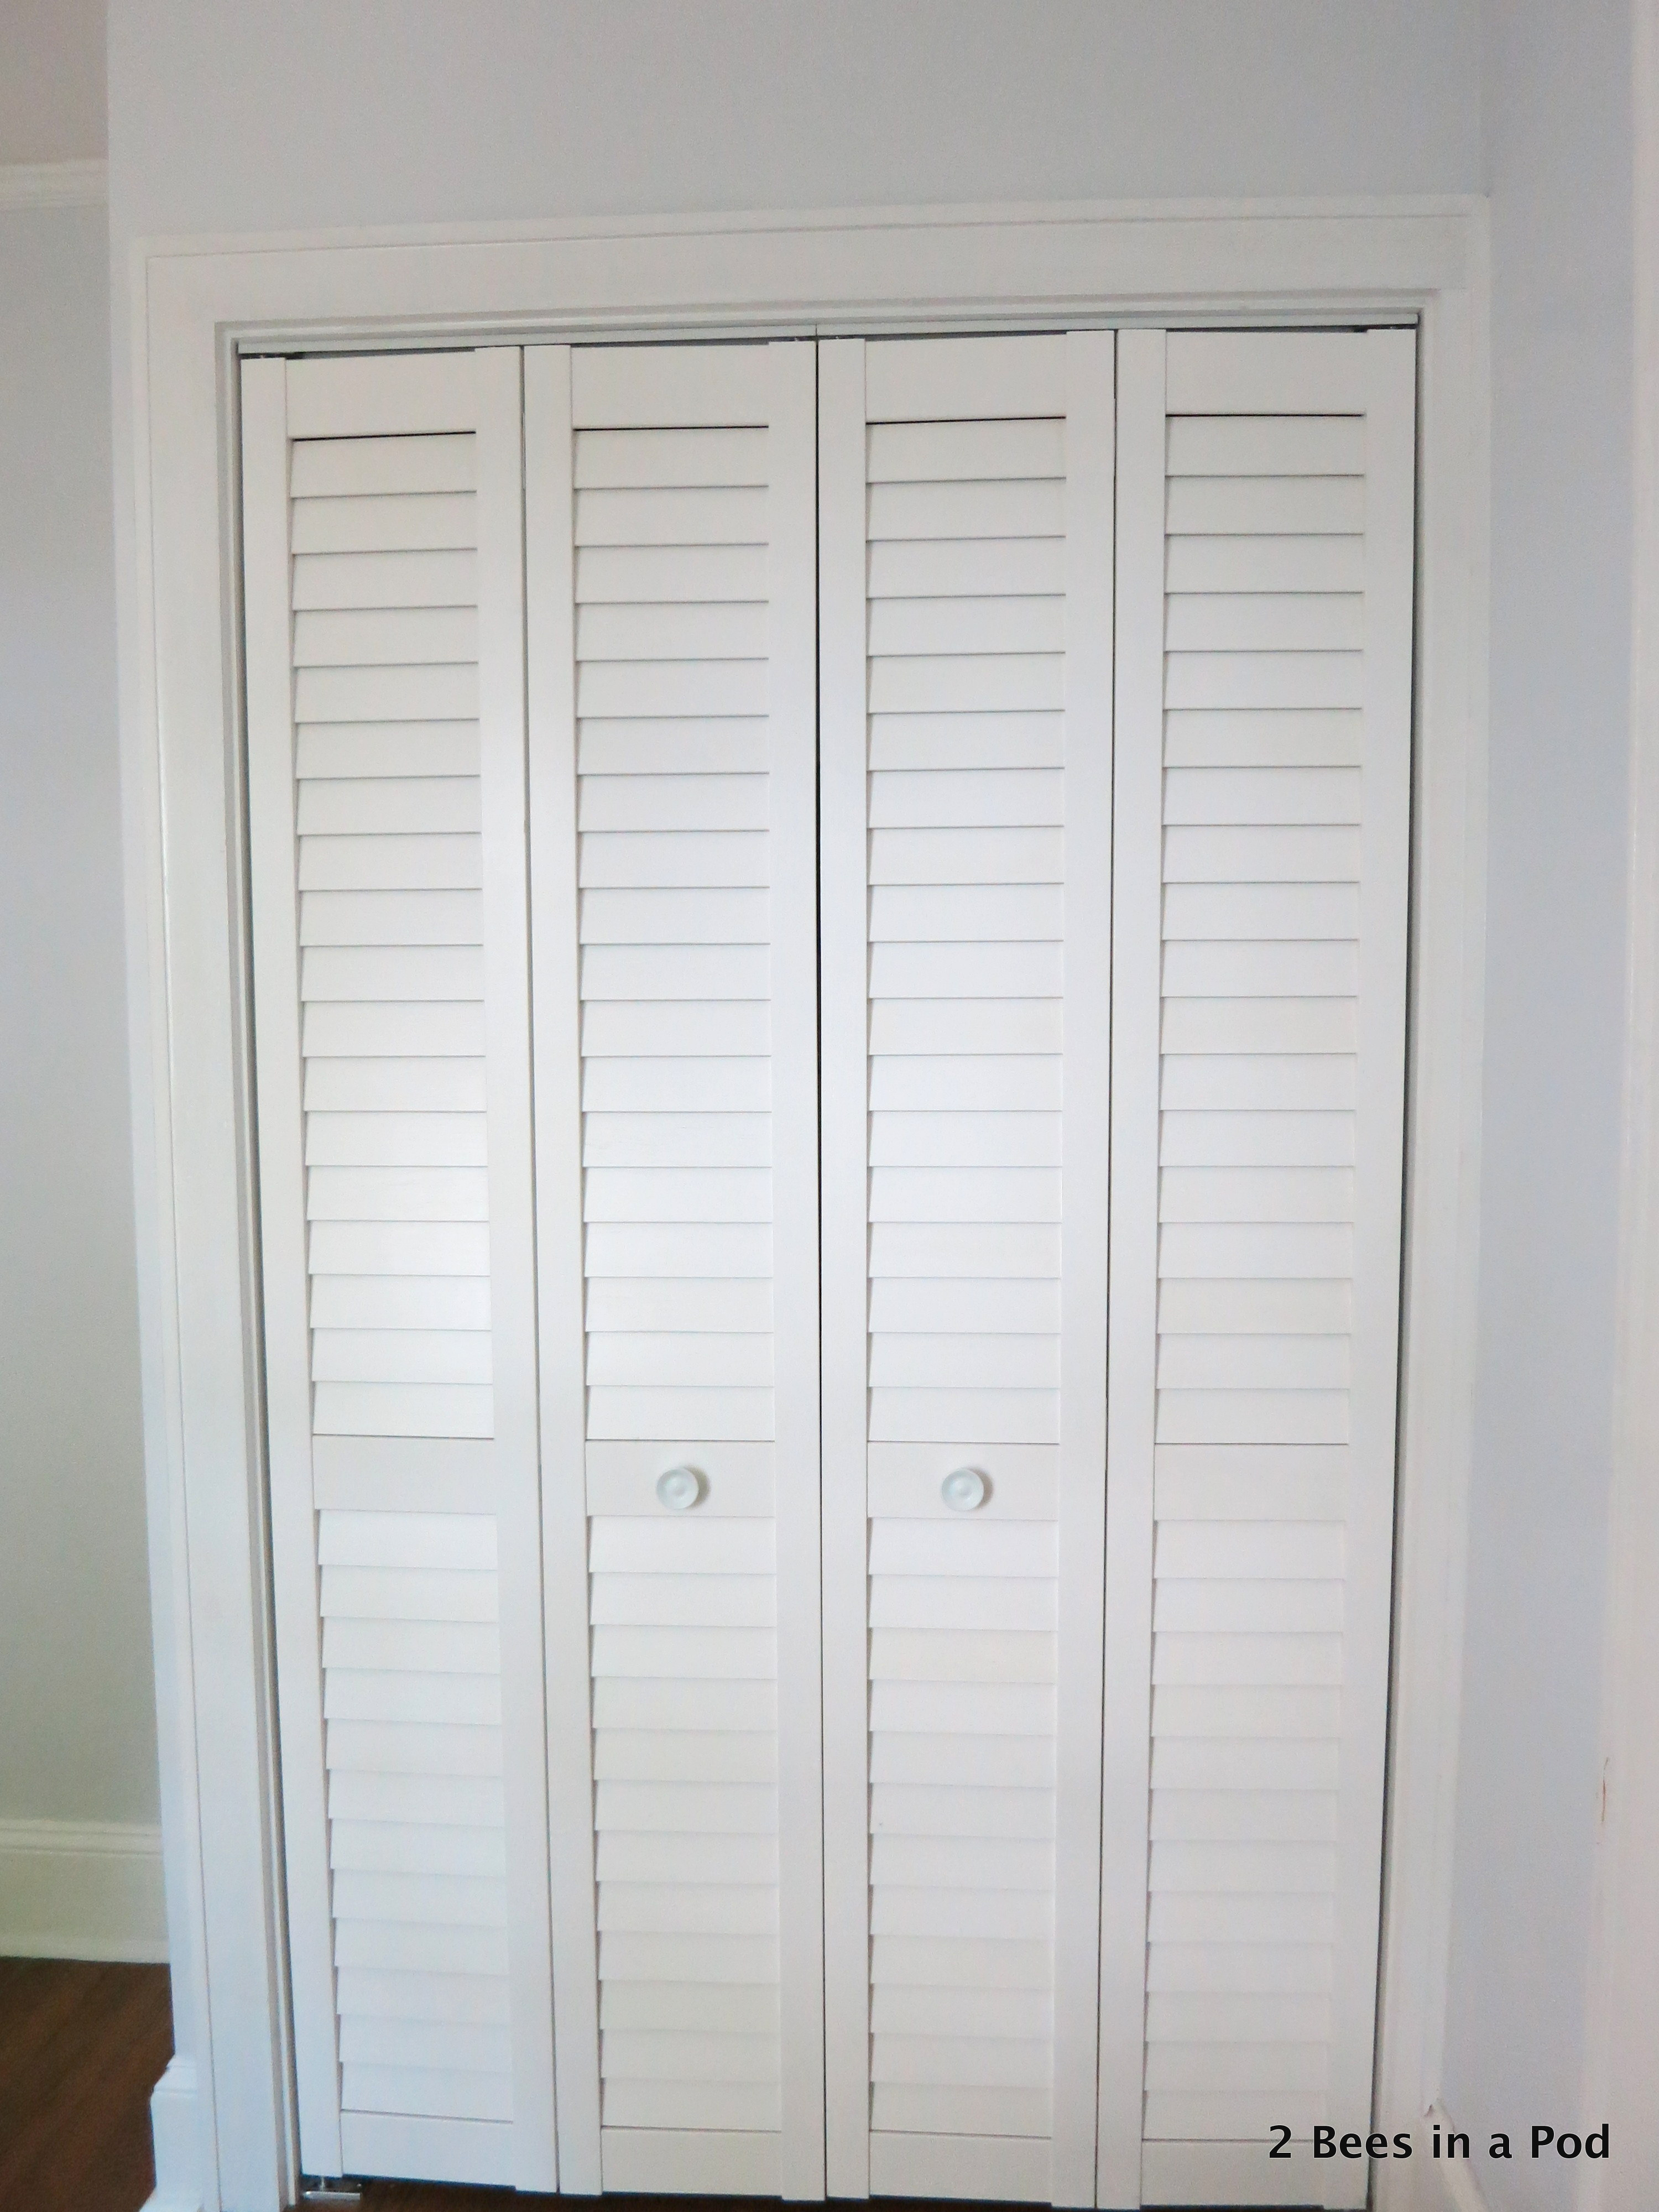 We can keep the laundry closet hidden with these two folding doors. They also take up less space.